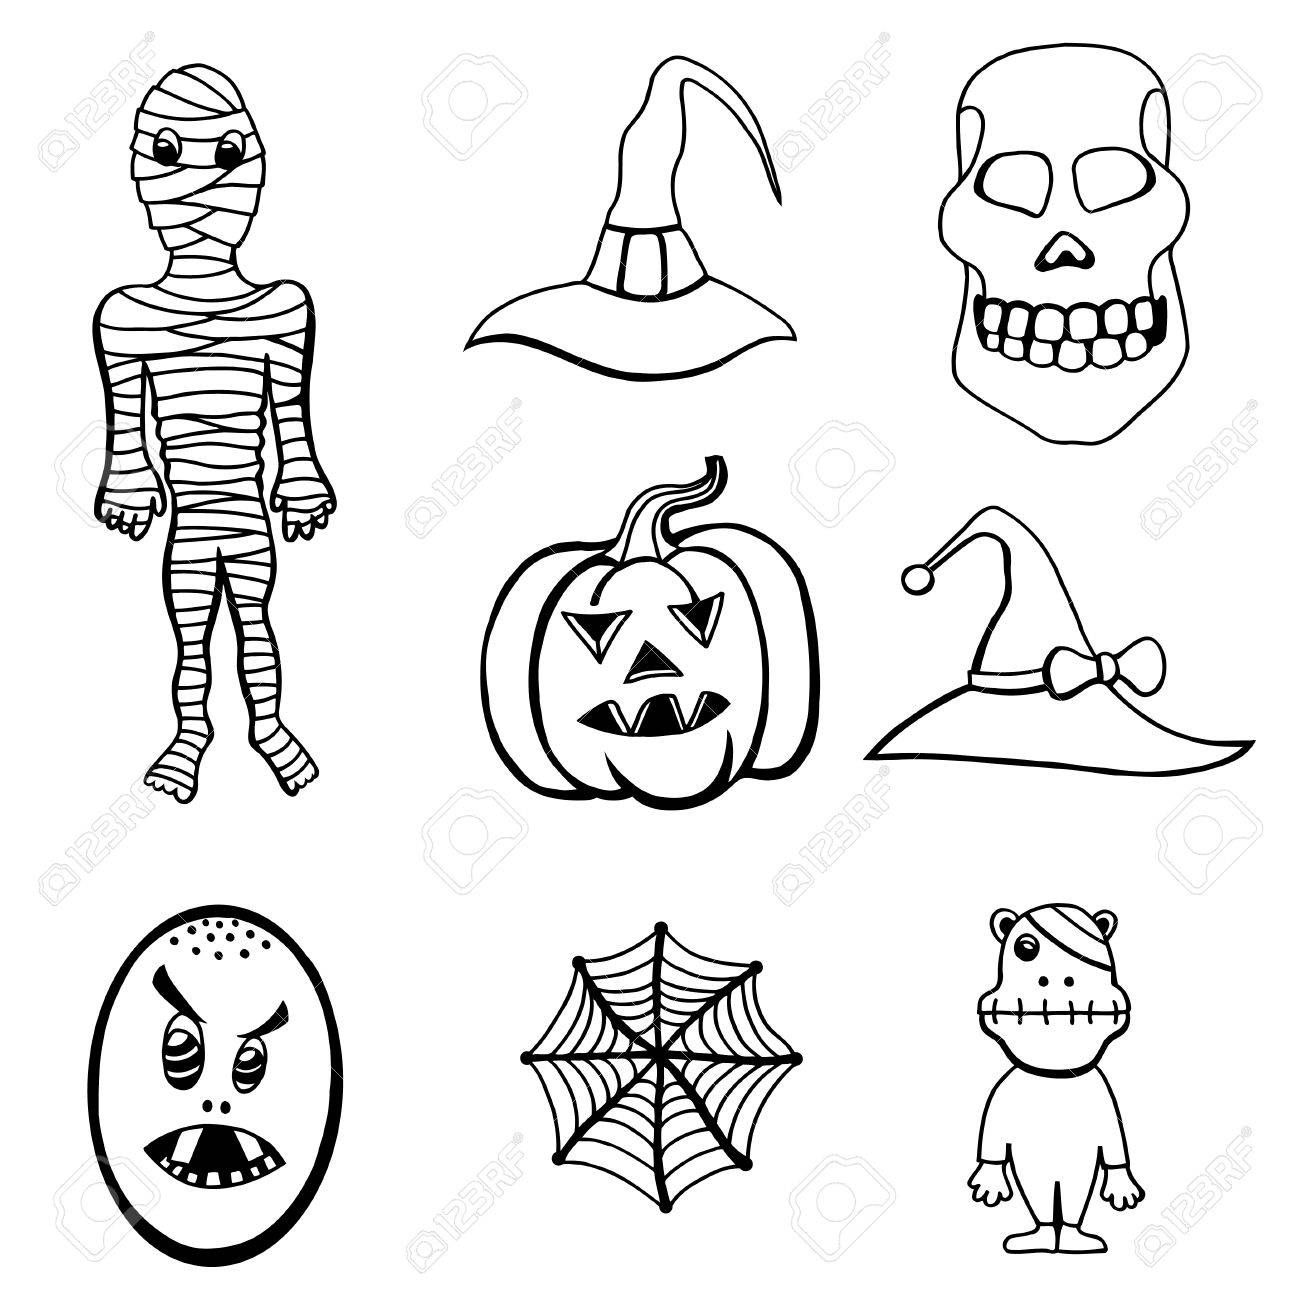 Monochrome Set Of Halloween Monsters And Hats Black And White Royalty Free Cliparts Vectors And Stock Illustration Image 62987494